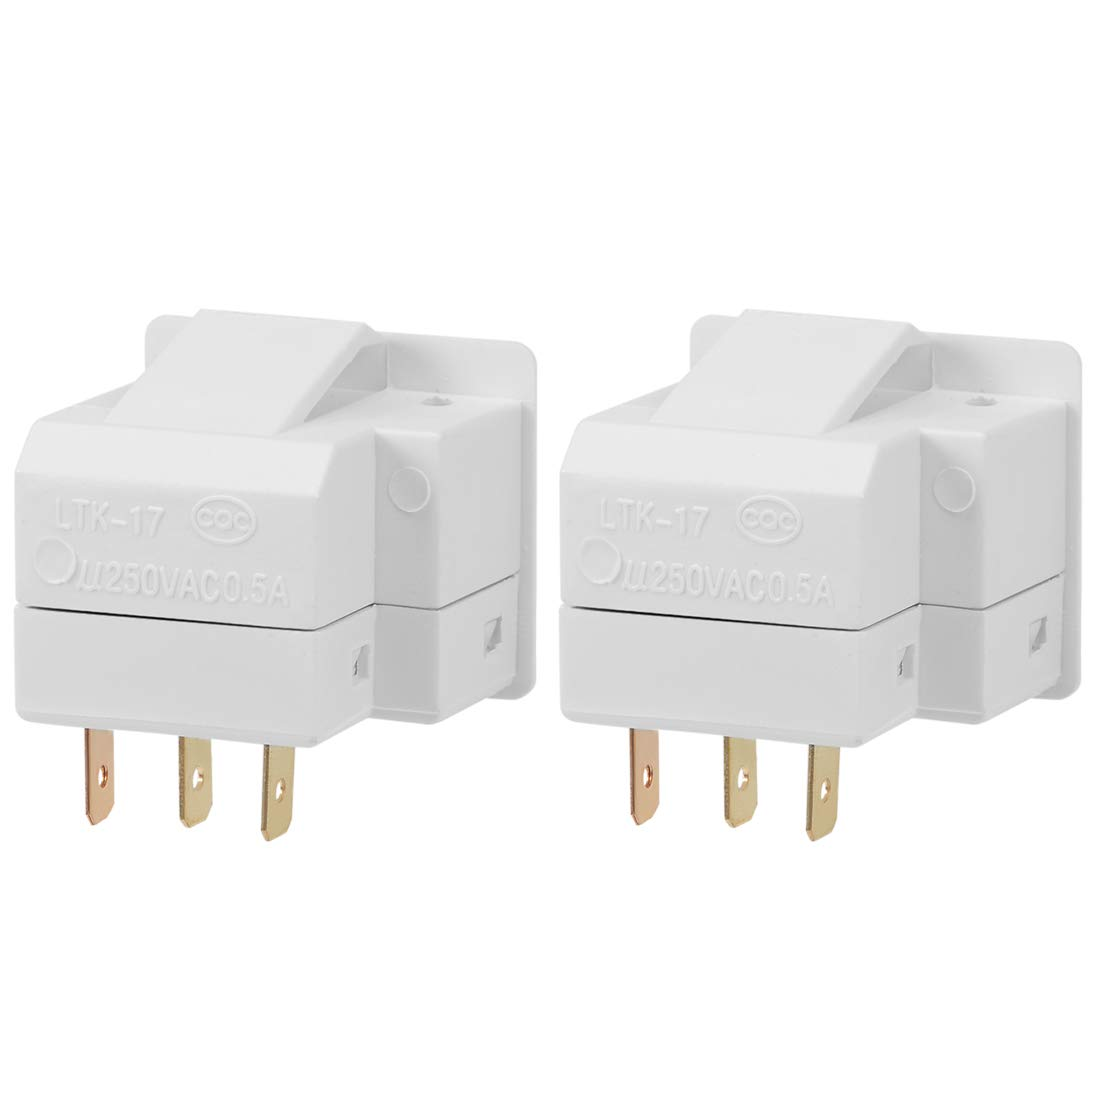 uxcell Refrigerator Door Light Switch LTK-17 Momentary Fridge Switch 1NO 1NC AC 250V 0.5A 2pcs